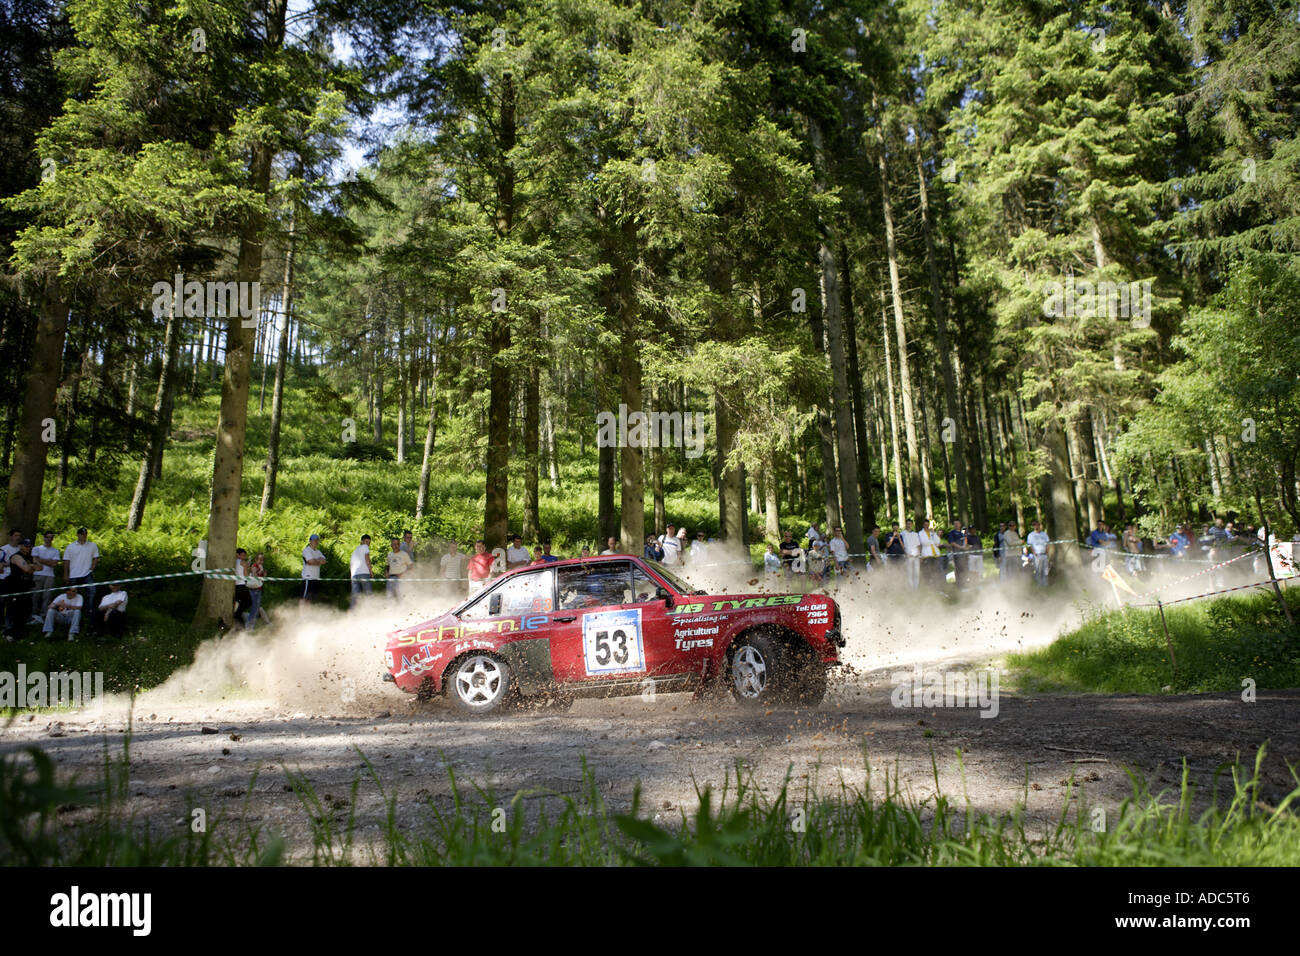 RSAC Scottish Rally Ae Forest - Stock Image